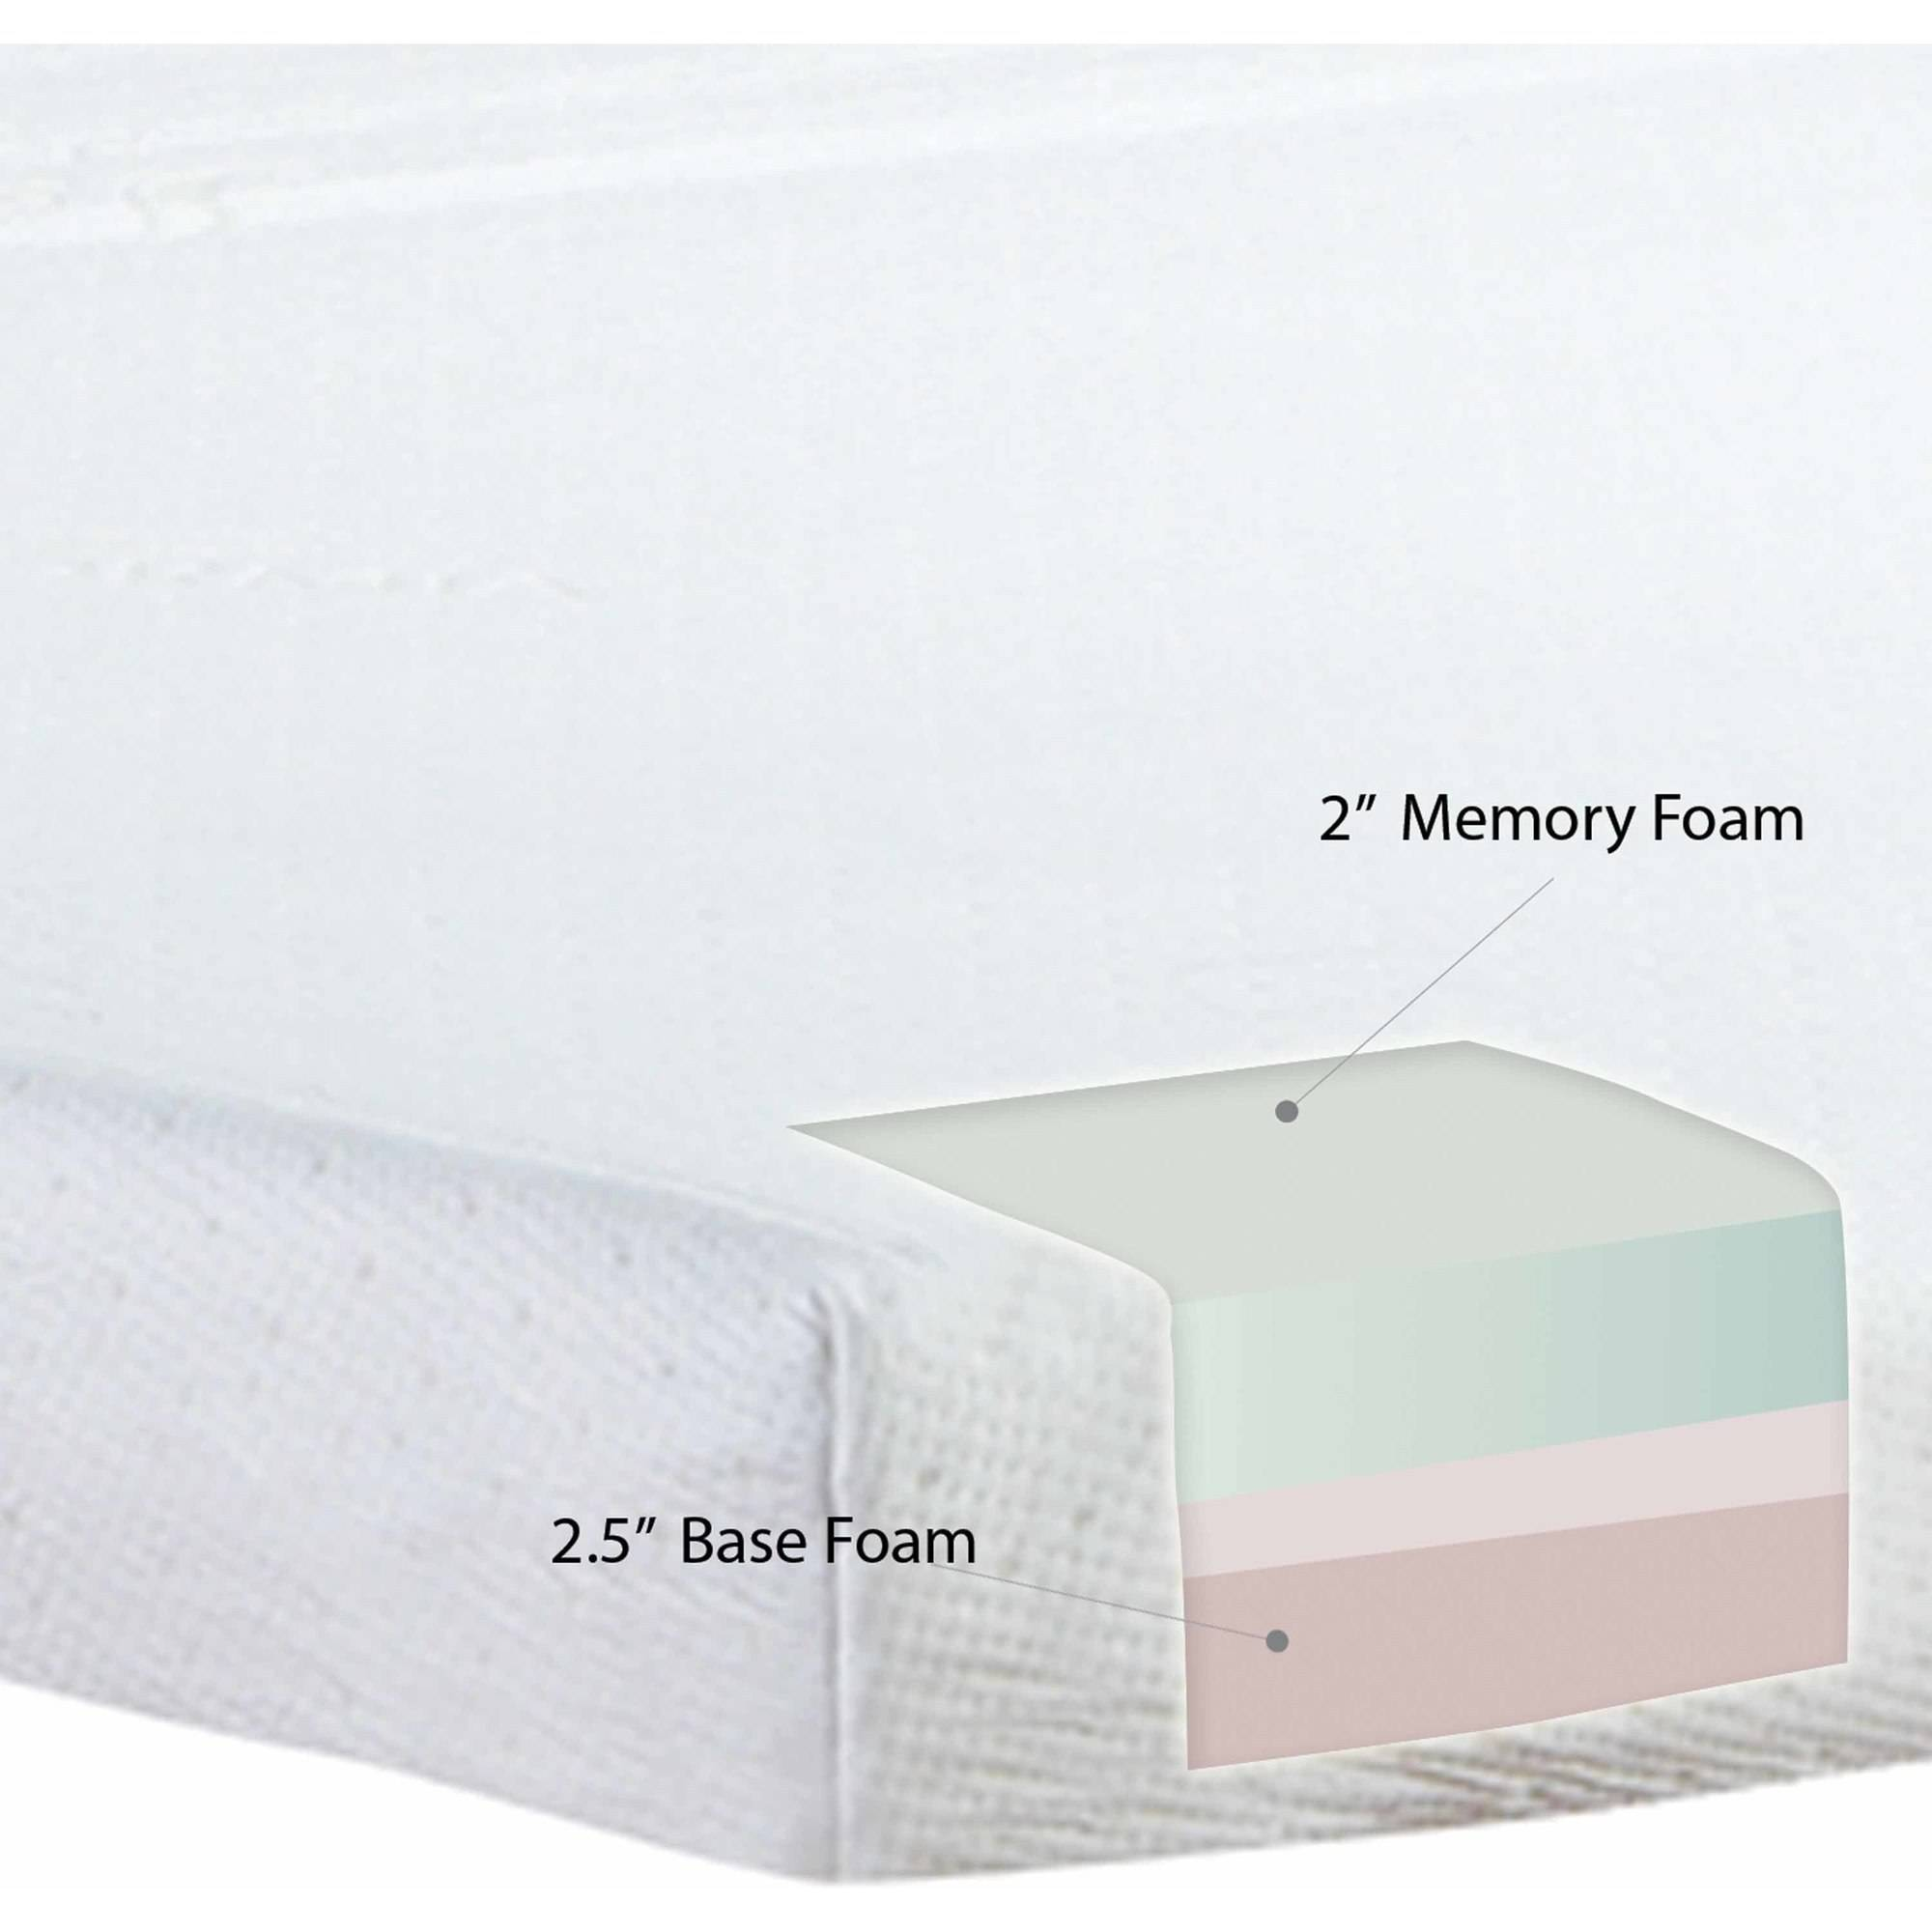 "Modern Sleep Memory Foam 4.5"" Sofa Bed Mattress, Multiple Sizes -  Walmart.com"